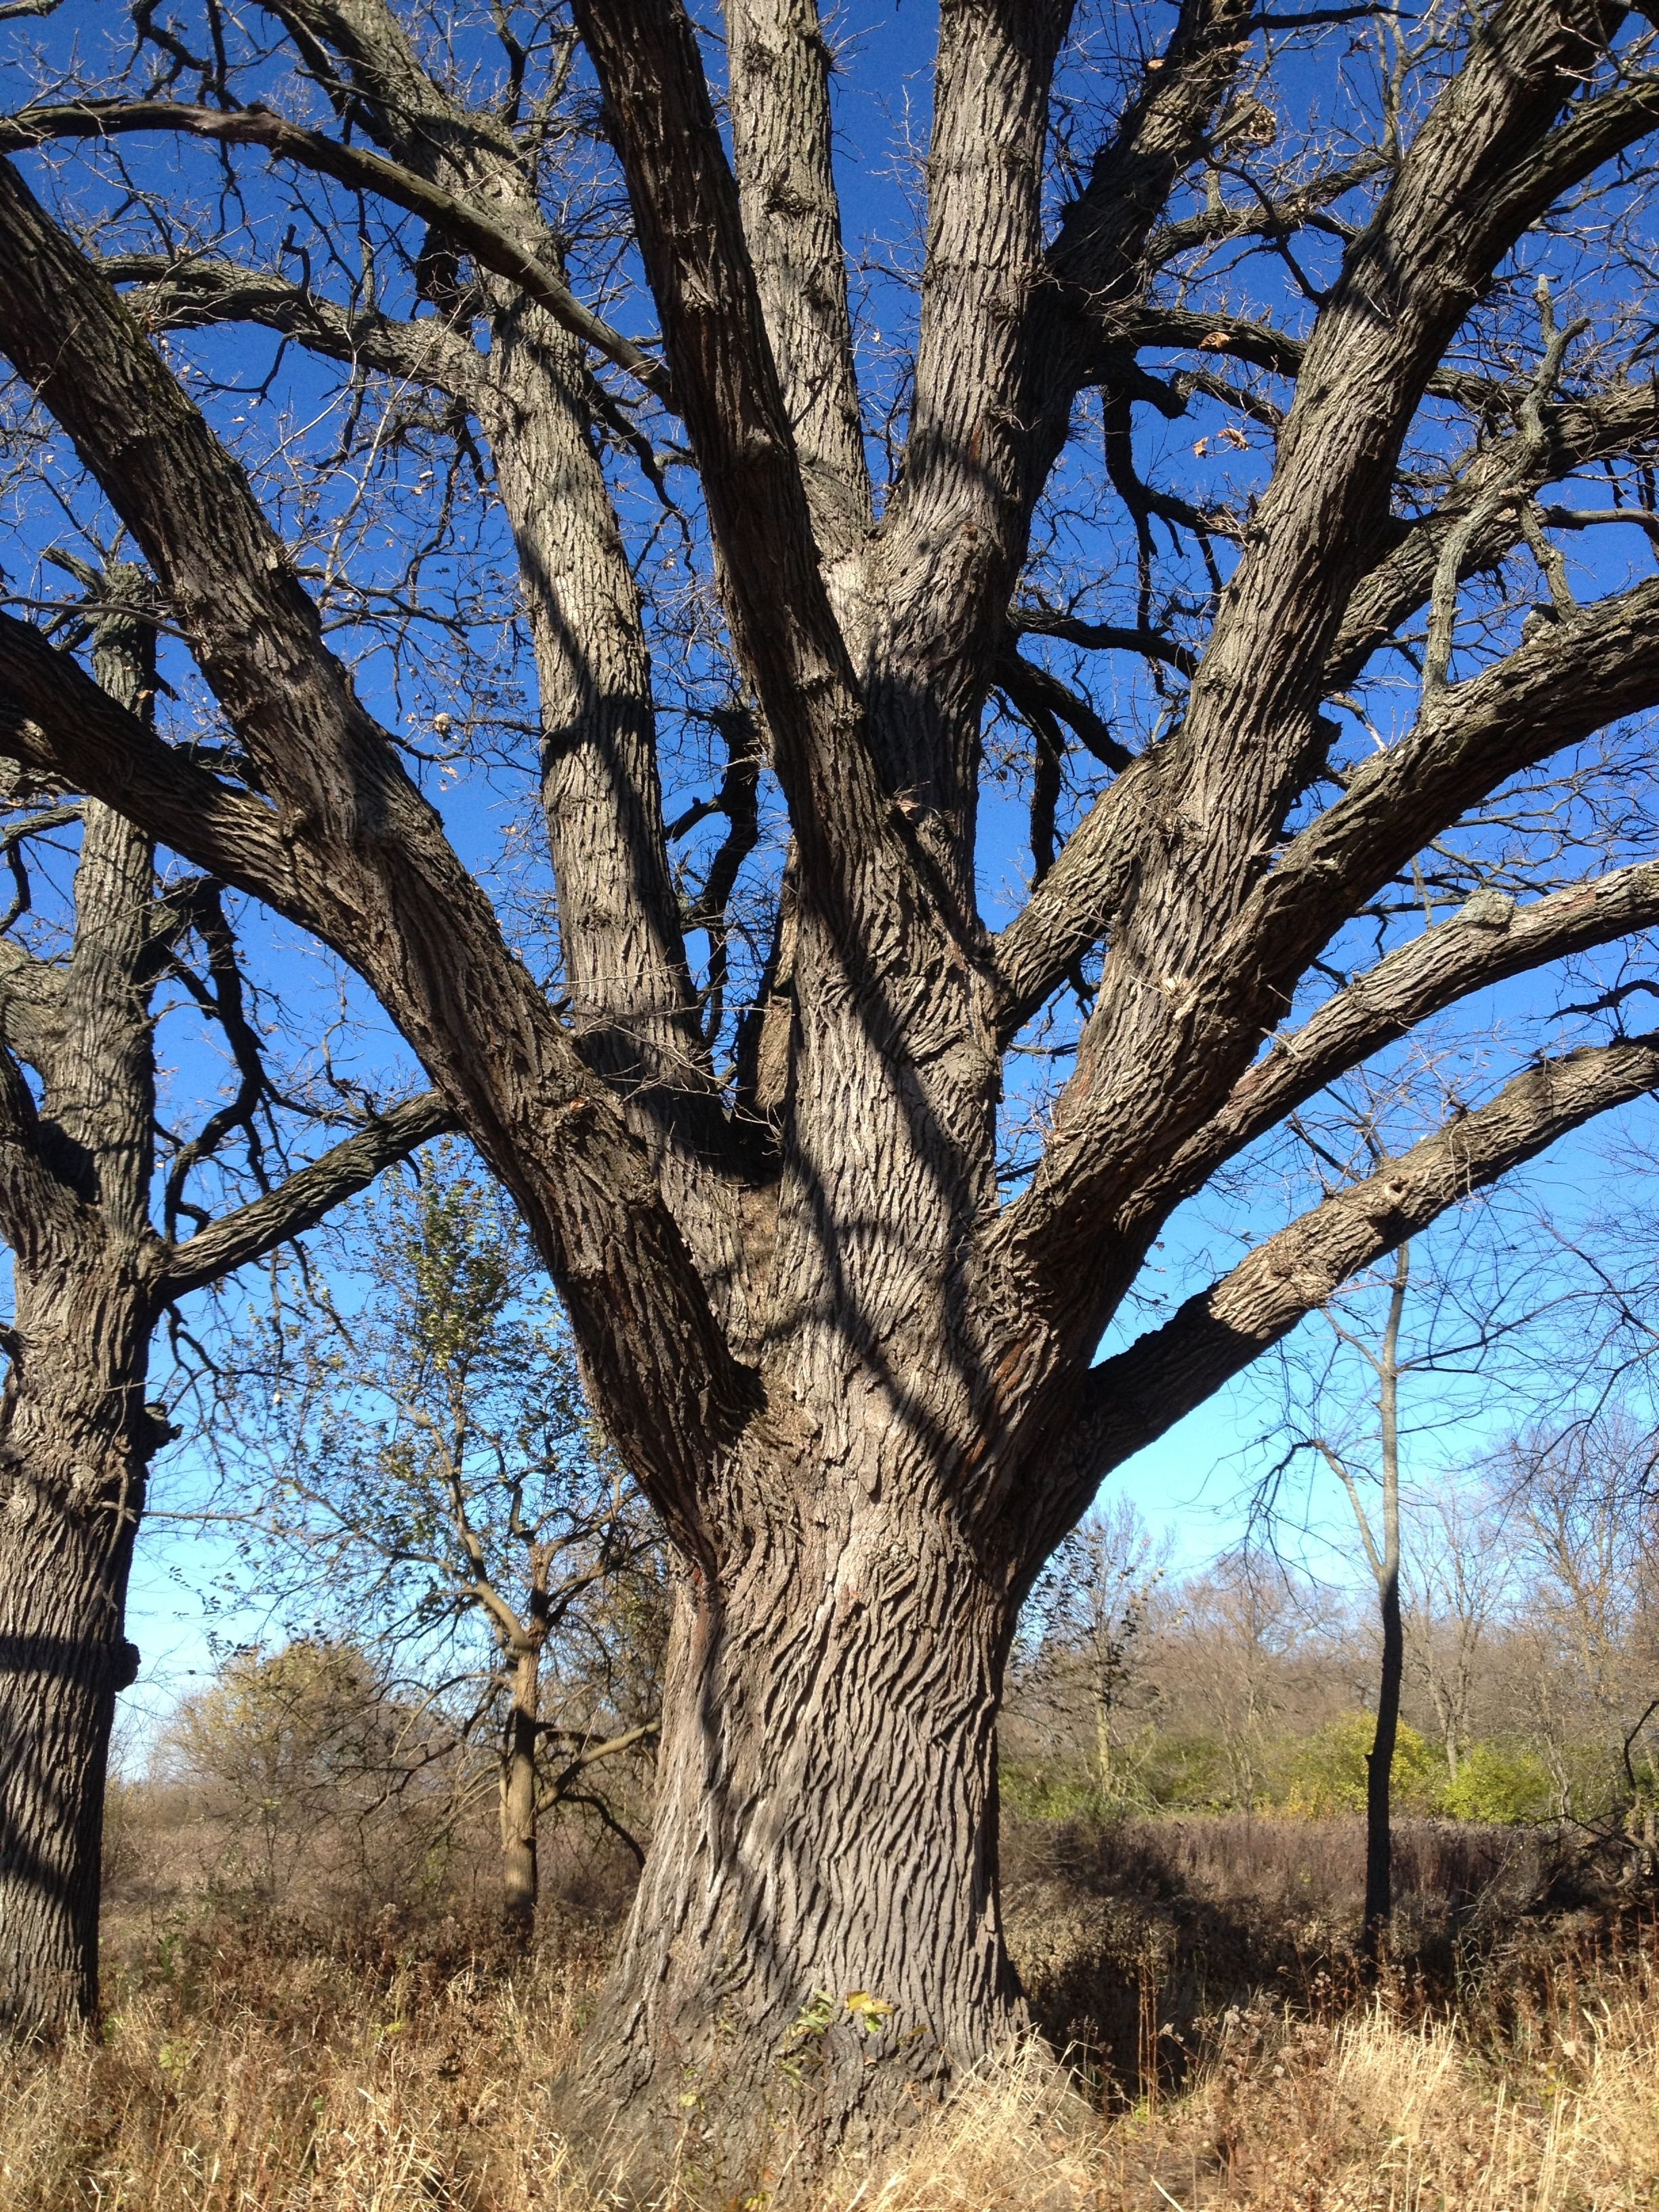 350 year burr oak tree at Midewin Tall Prairie Grass